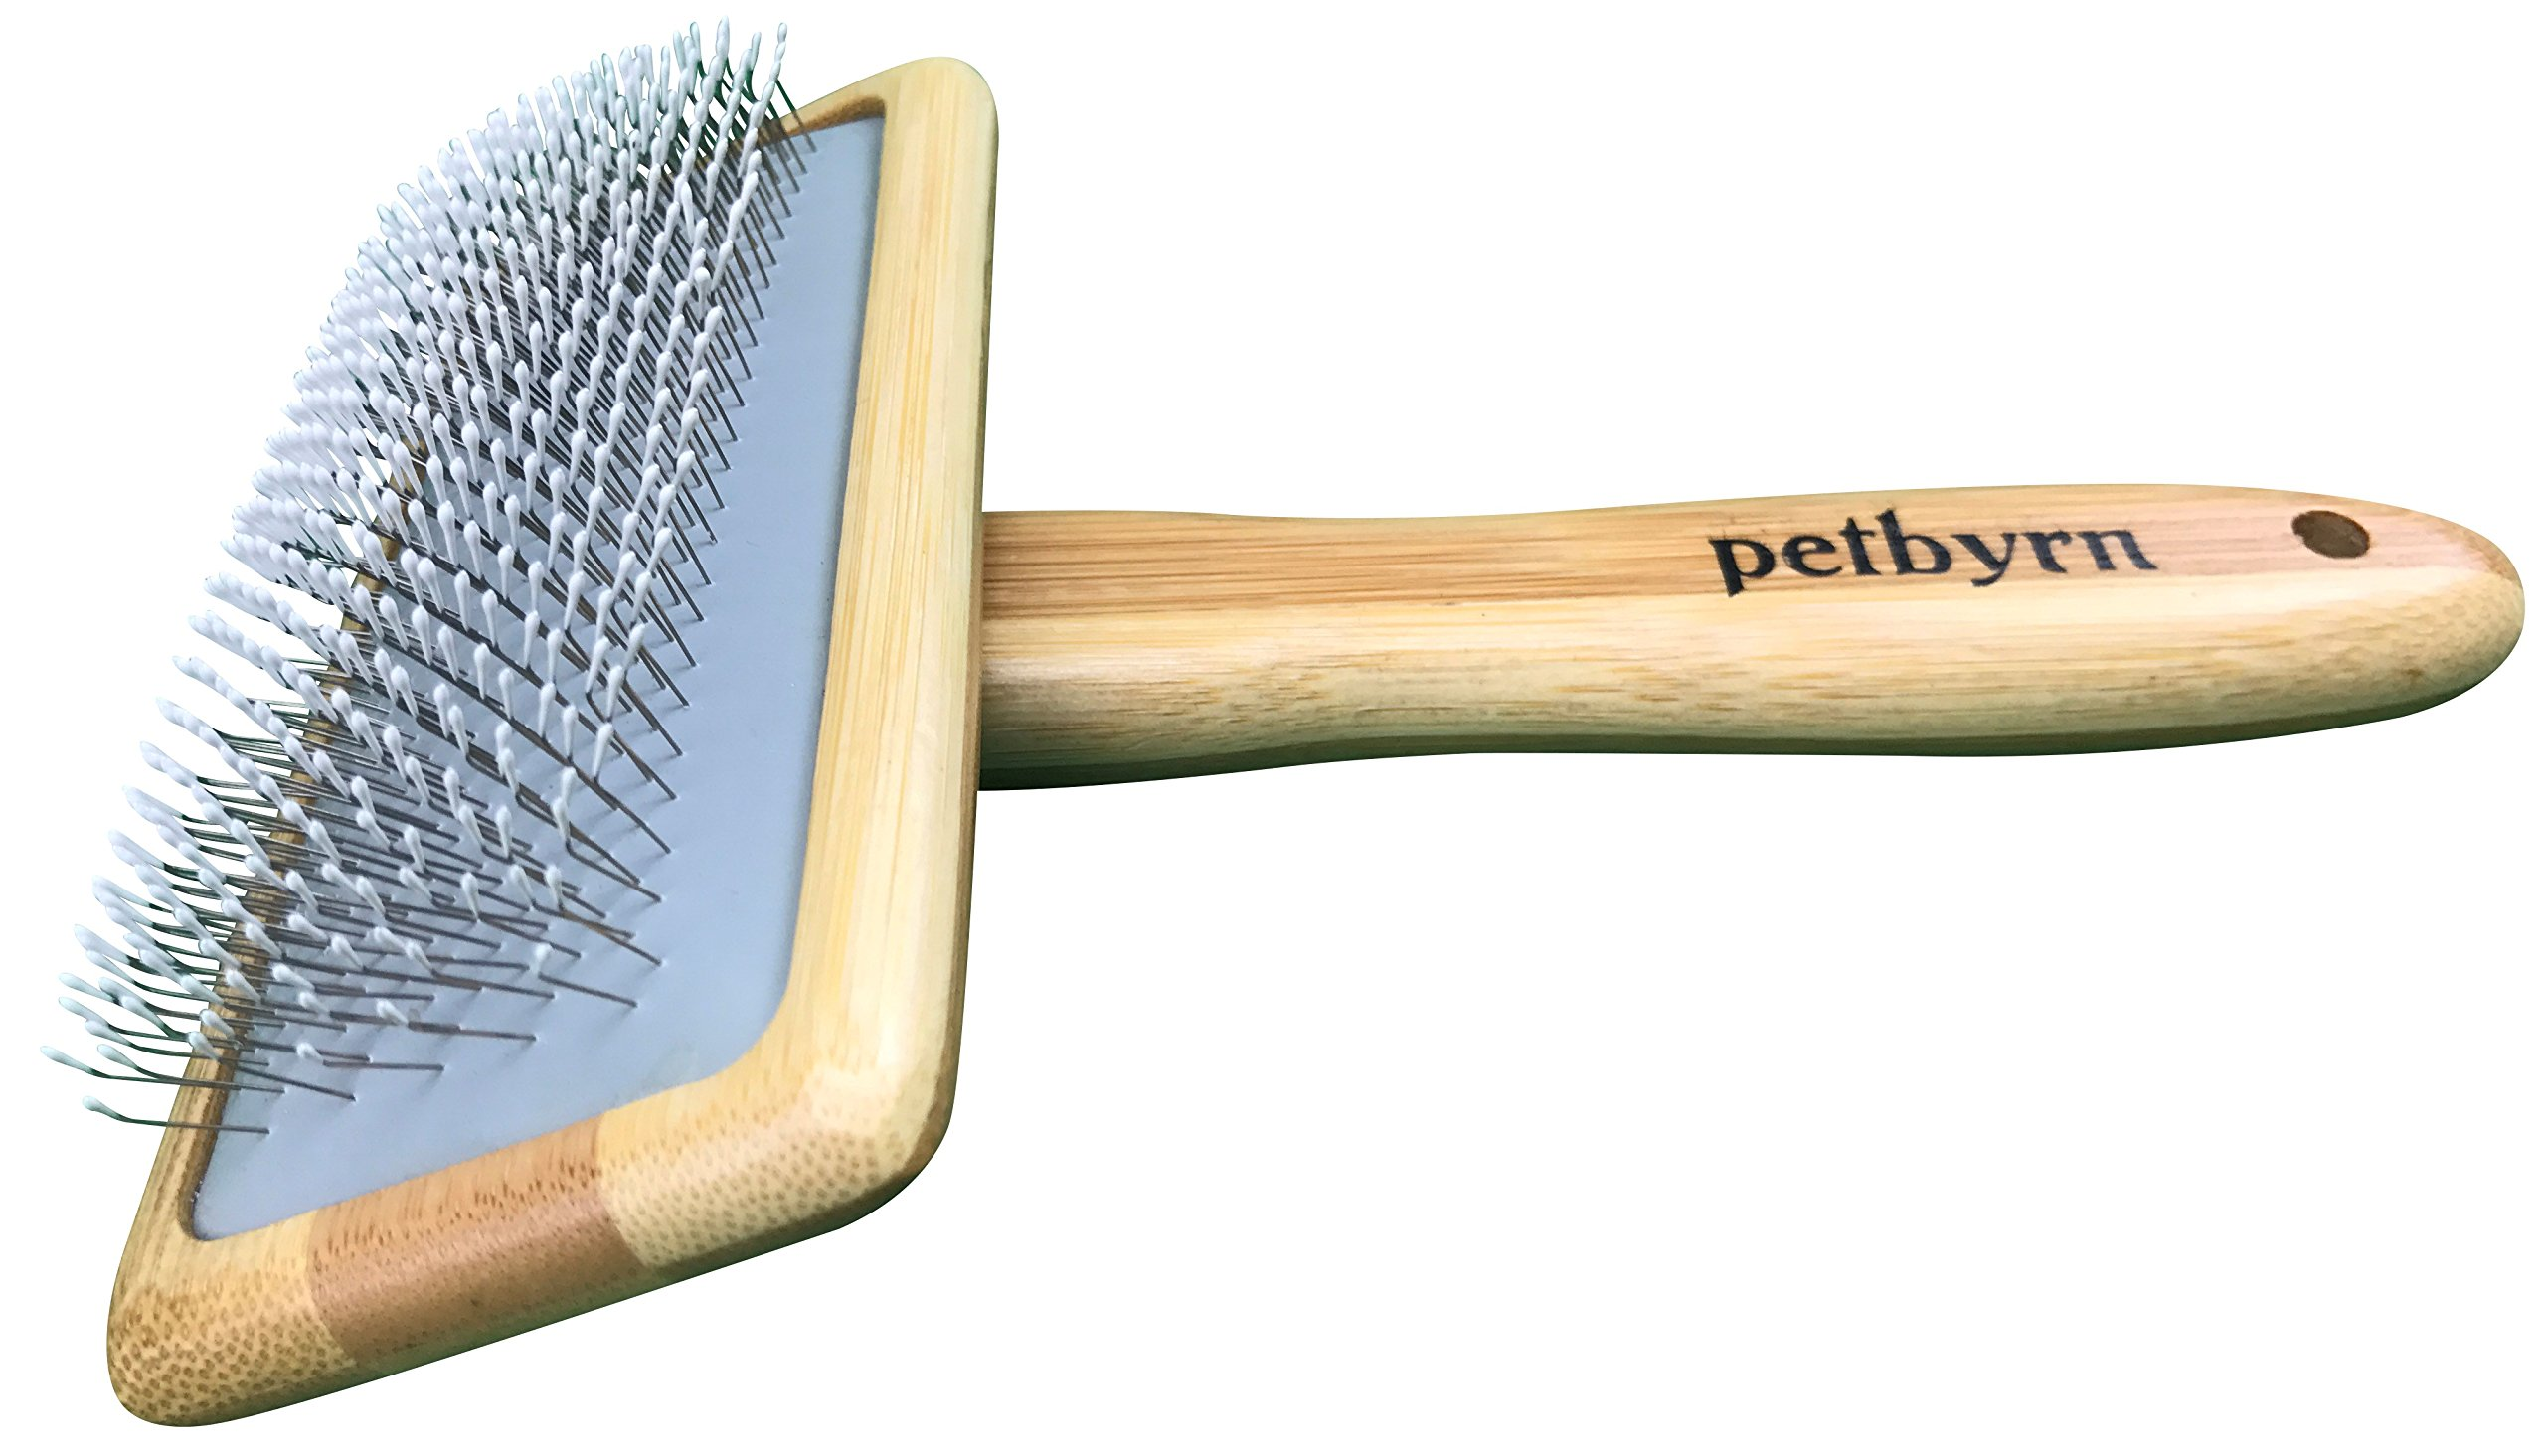 Petbyrn Slicker Dog Cat Grooming Brush - NO.1 For Deshedding Detangling and Dematting Small, Medium and Large Short to Long Hair Pets. Cut Shedding, Massage and Stimulate Healthy Coats by